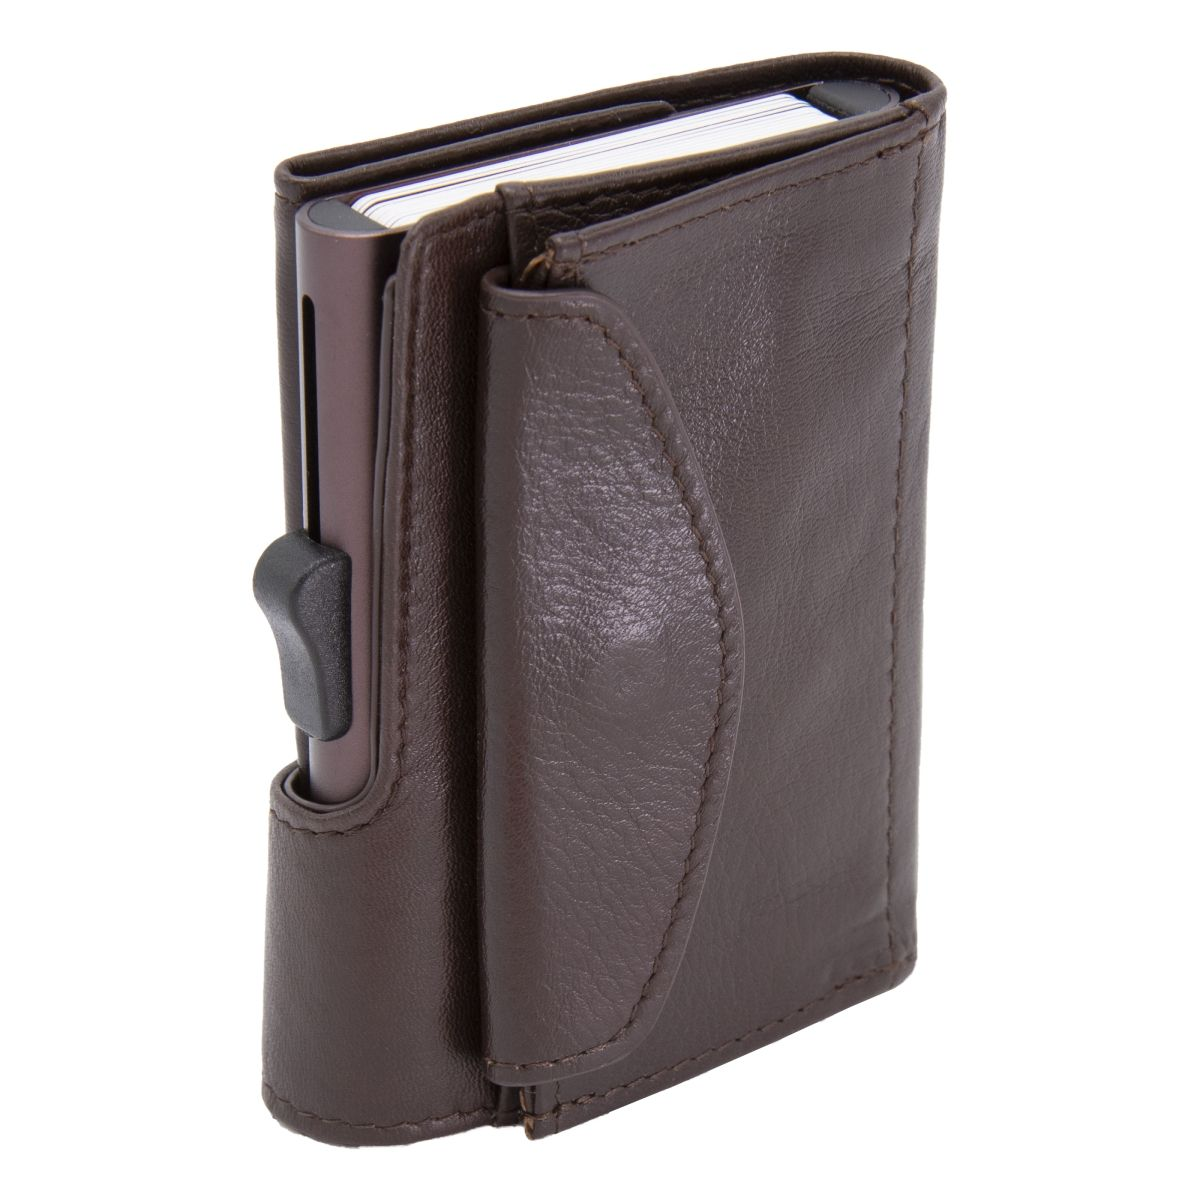 C-Secure XL Aluminum Wallet with Genuine Leather and Coins Pocket - Mogano Brown